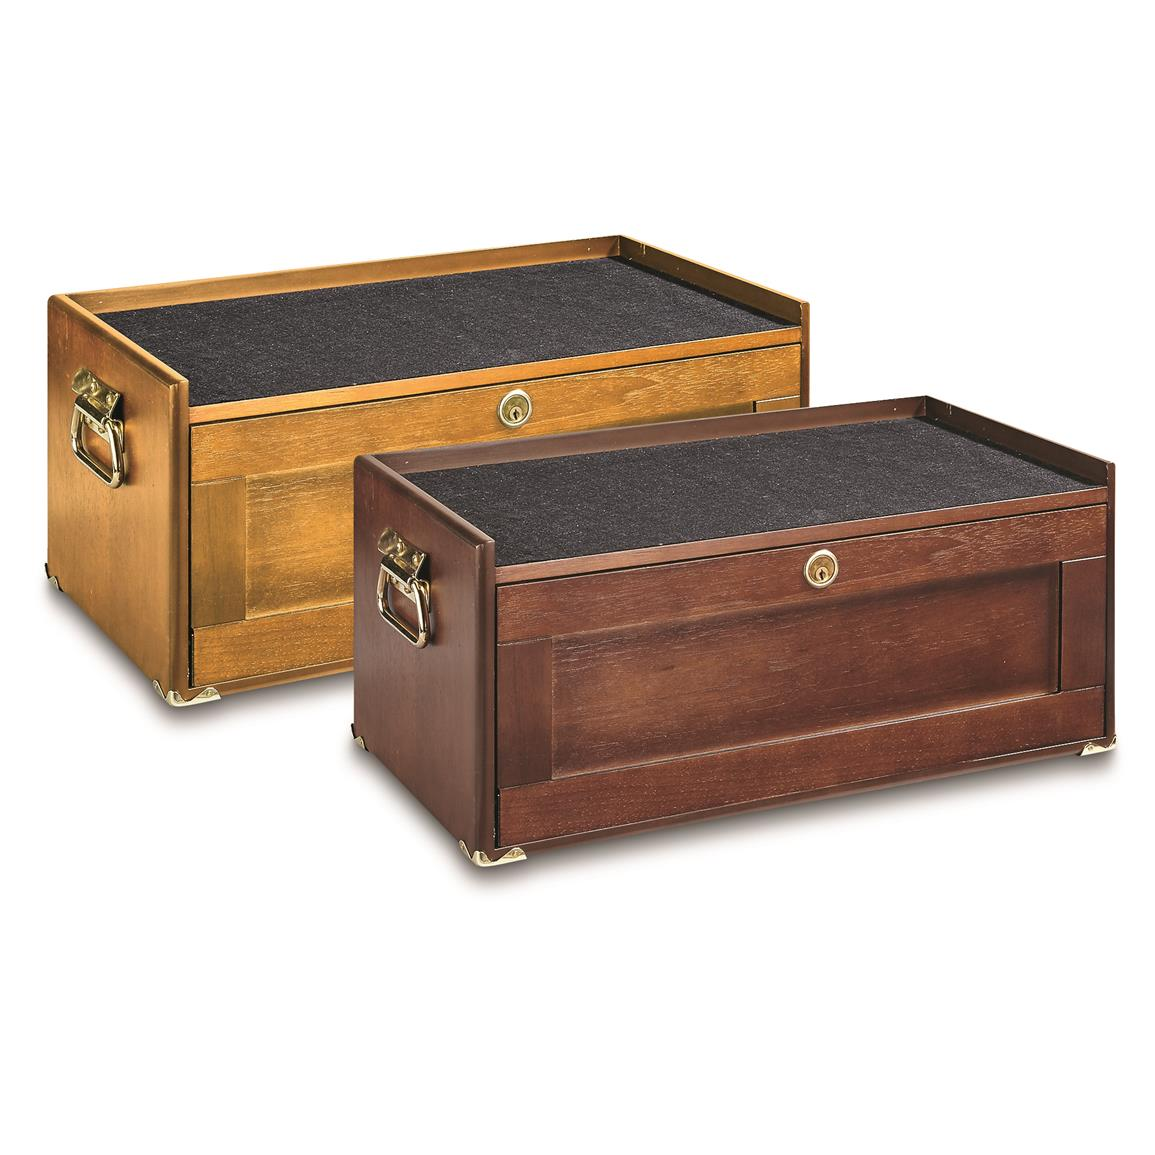 CASTLECREEK 4 Drawer Storage Base